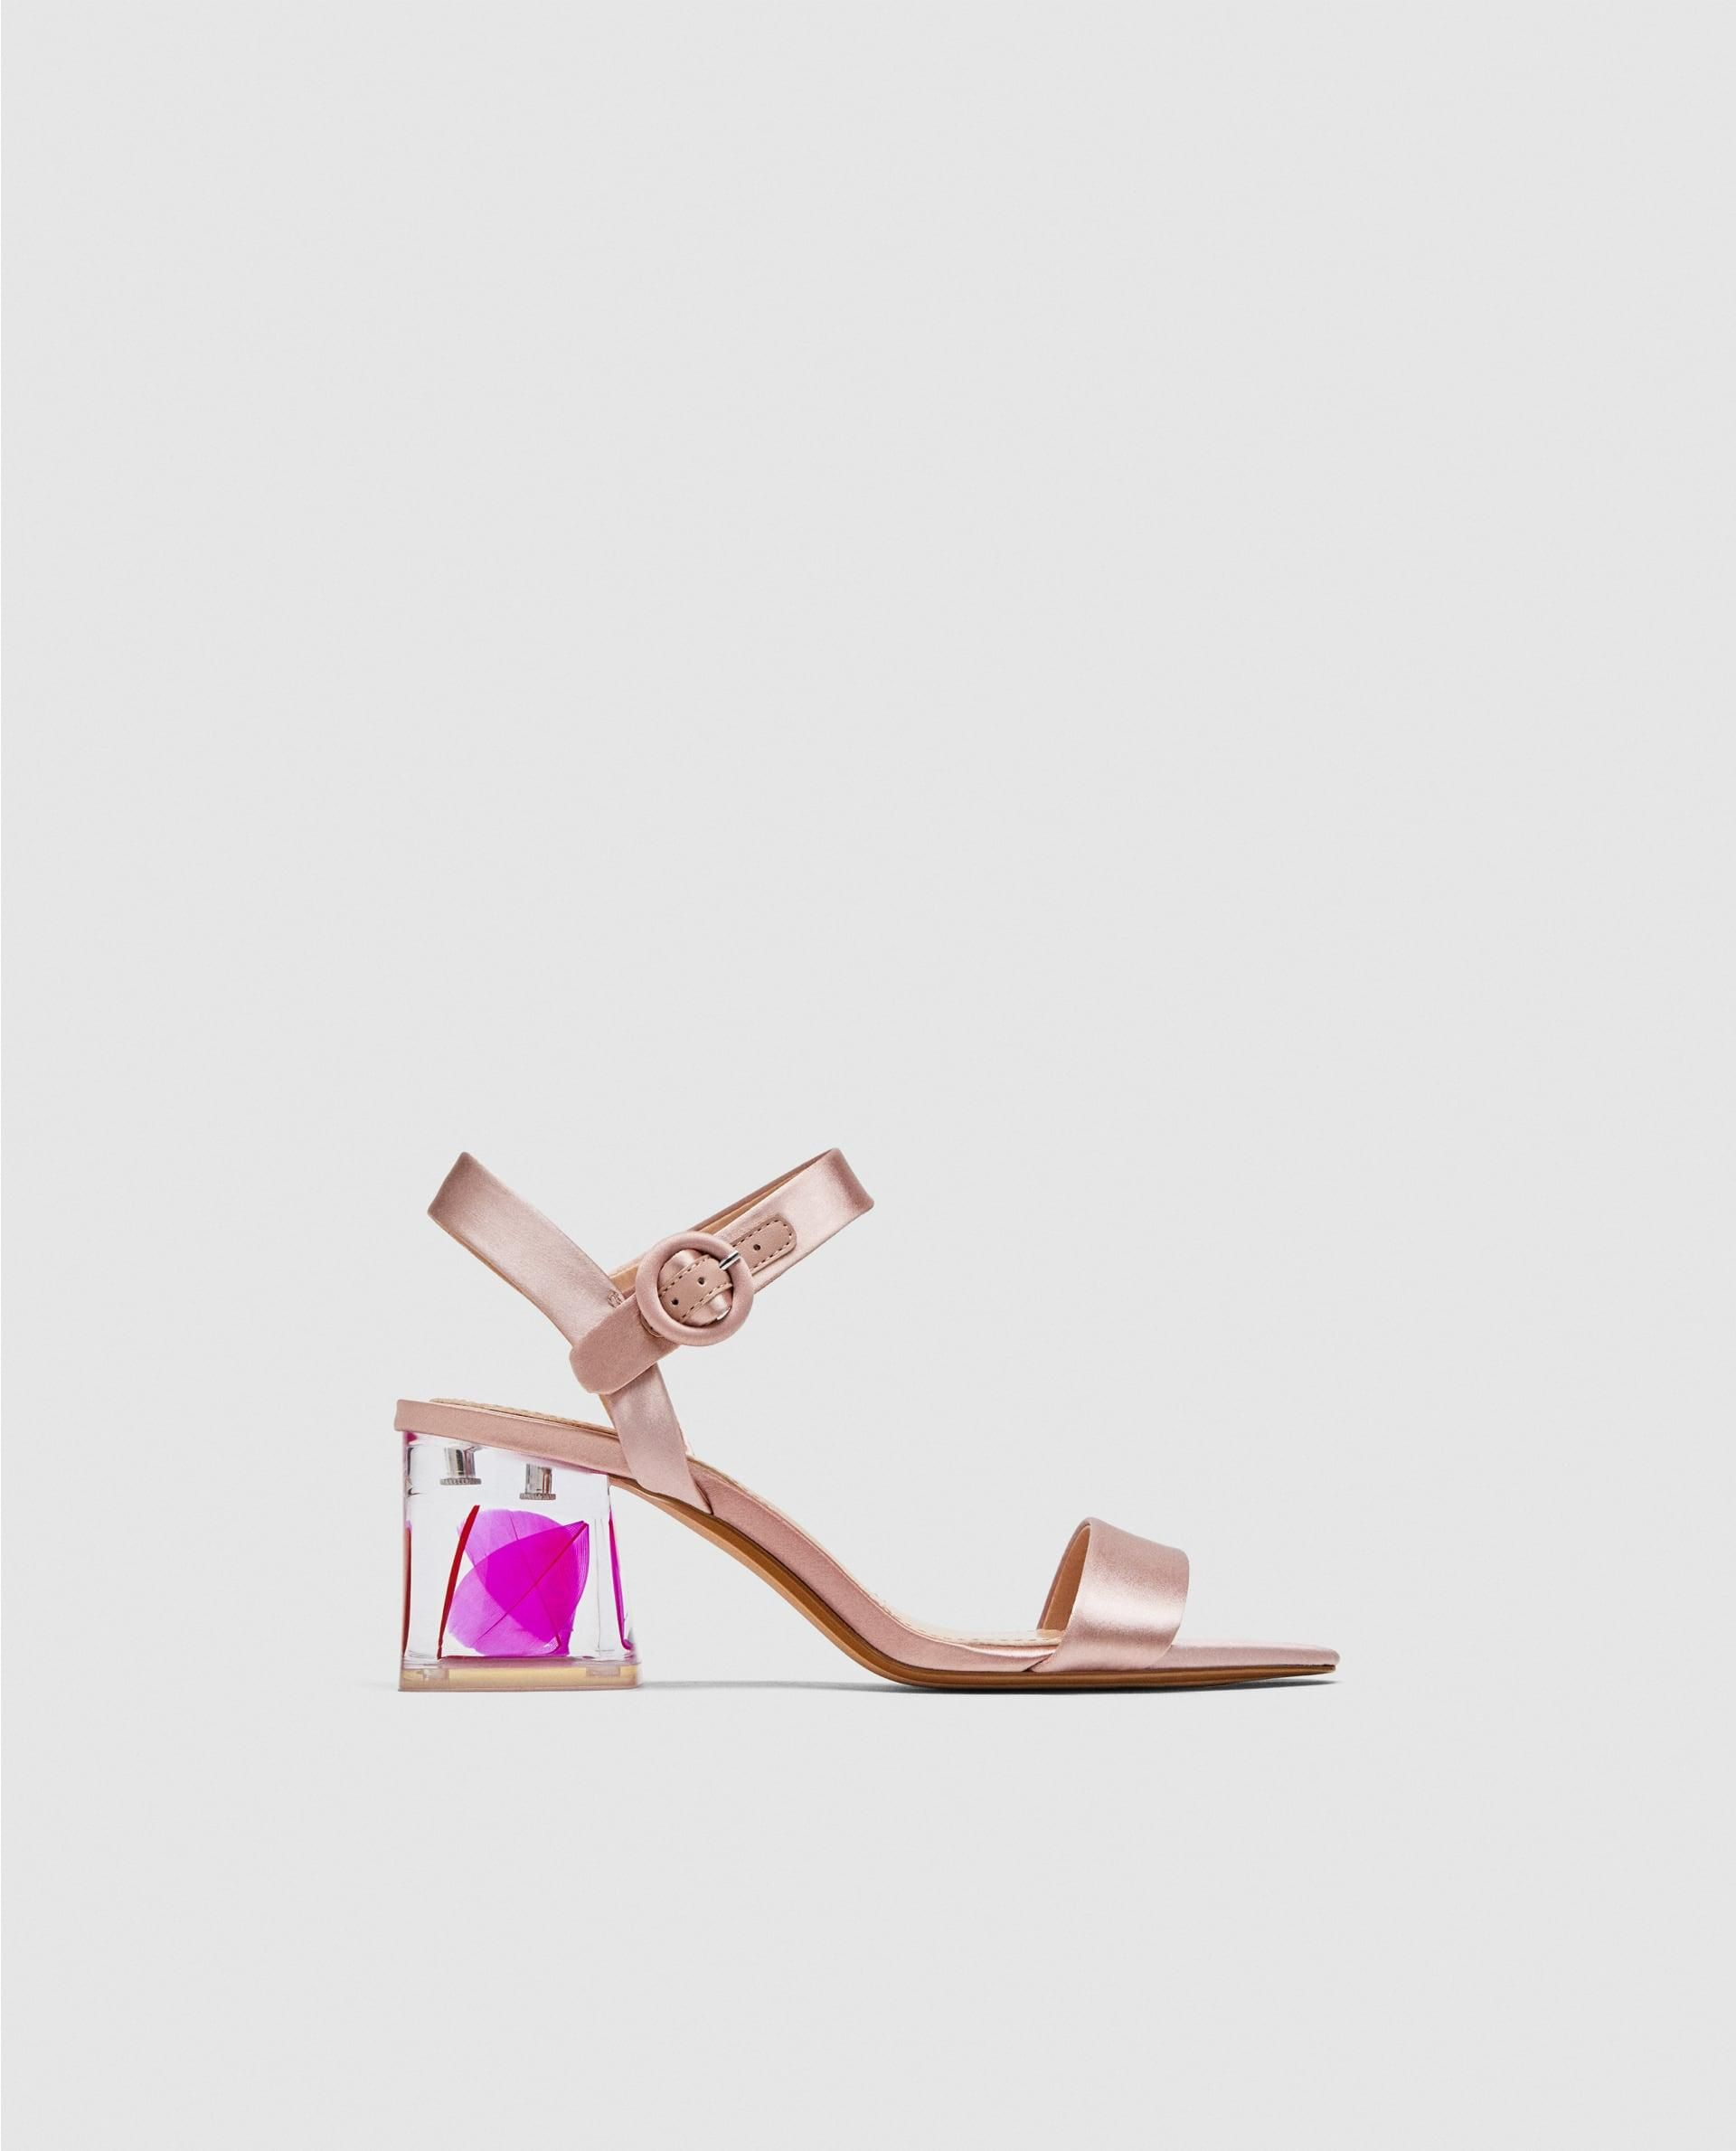 208bf8775bd87 Satin Sandals With Embellished Heels // 69.90 USD // Zara // Dark pink satin  sandals. Feathers inside the clear heels. Buckled ankle straps.